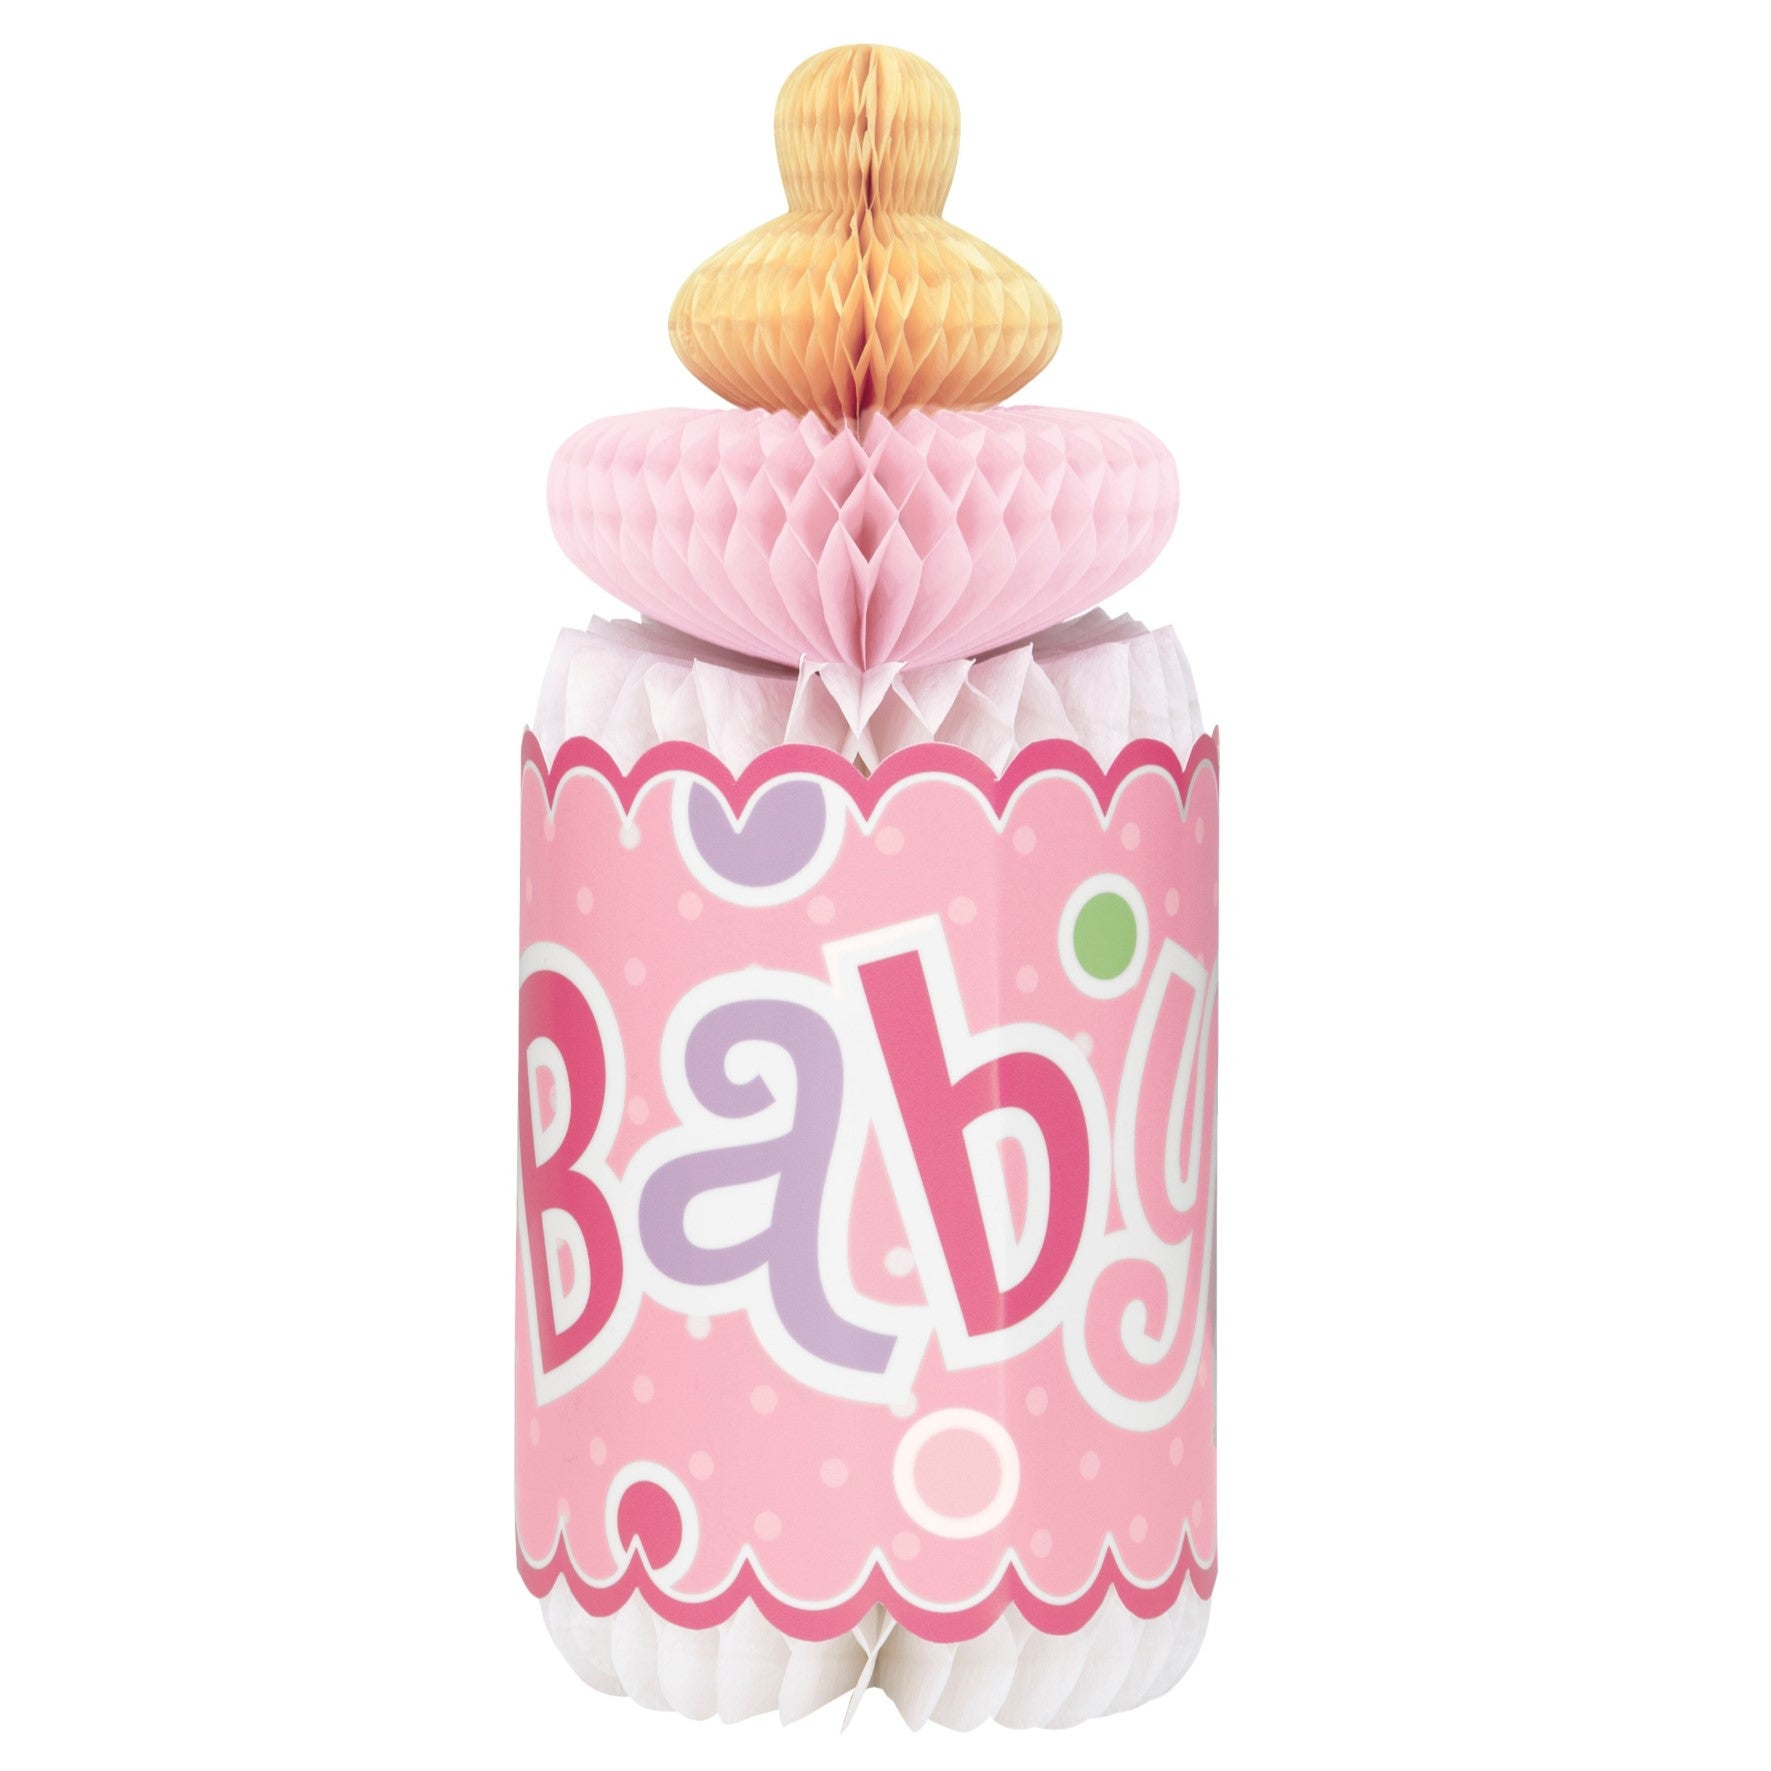 Pink Dotty Baby Honeycomb Bottle Decoration - Uk Baby Shower Co ltd